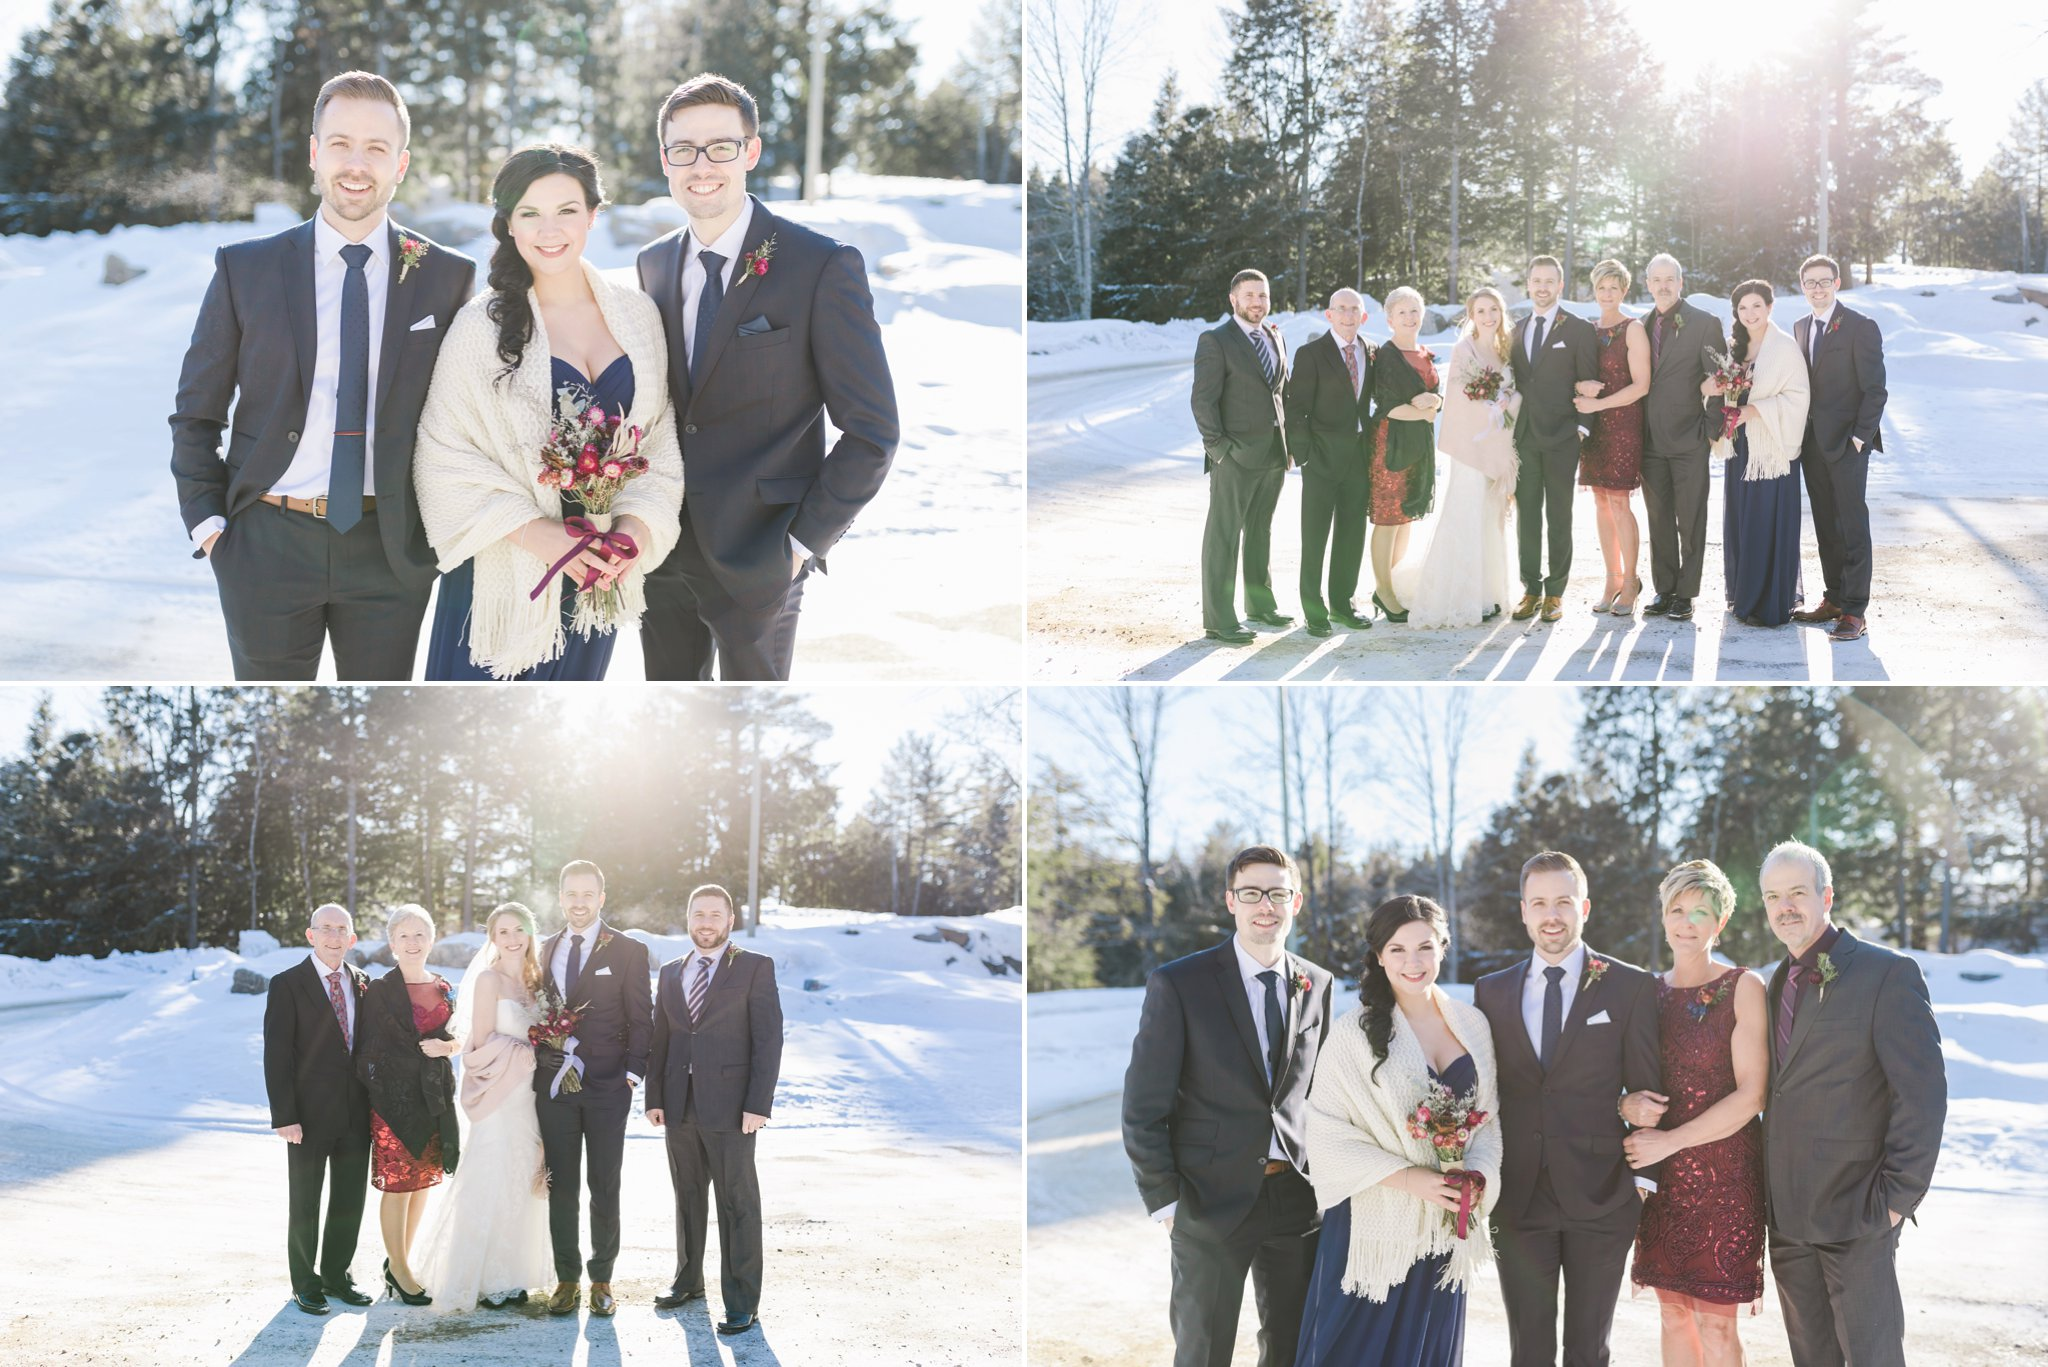 Family formals at the Winter wedding at Le Belvedere